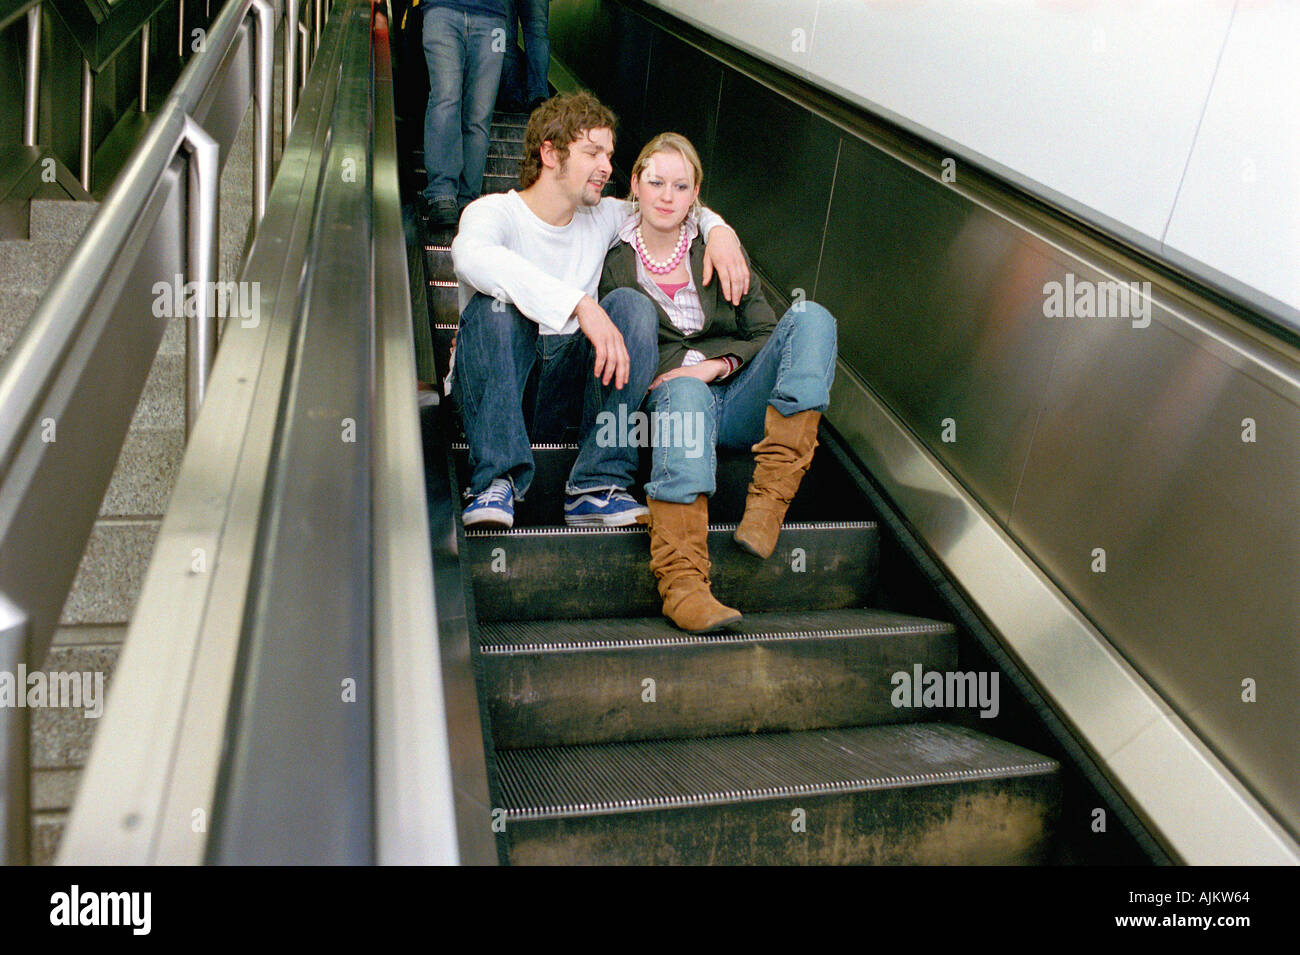 Couple sitting on escalator Banque D'Images